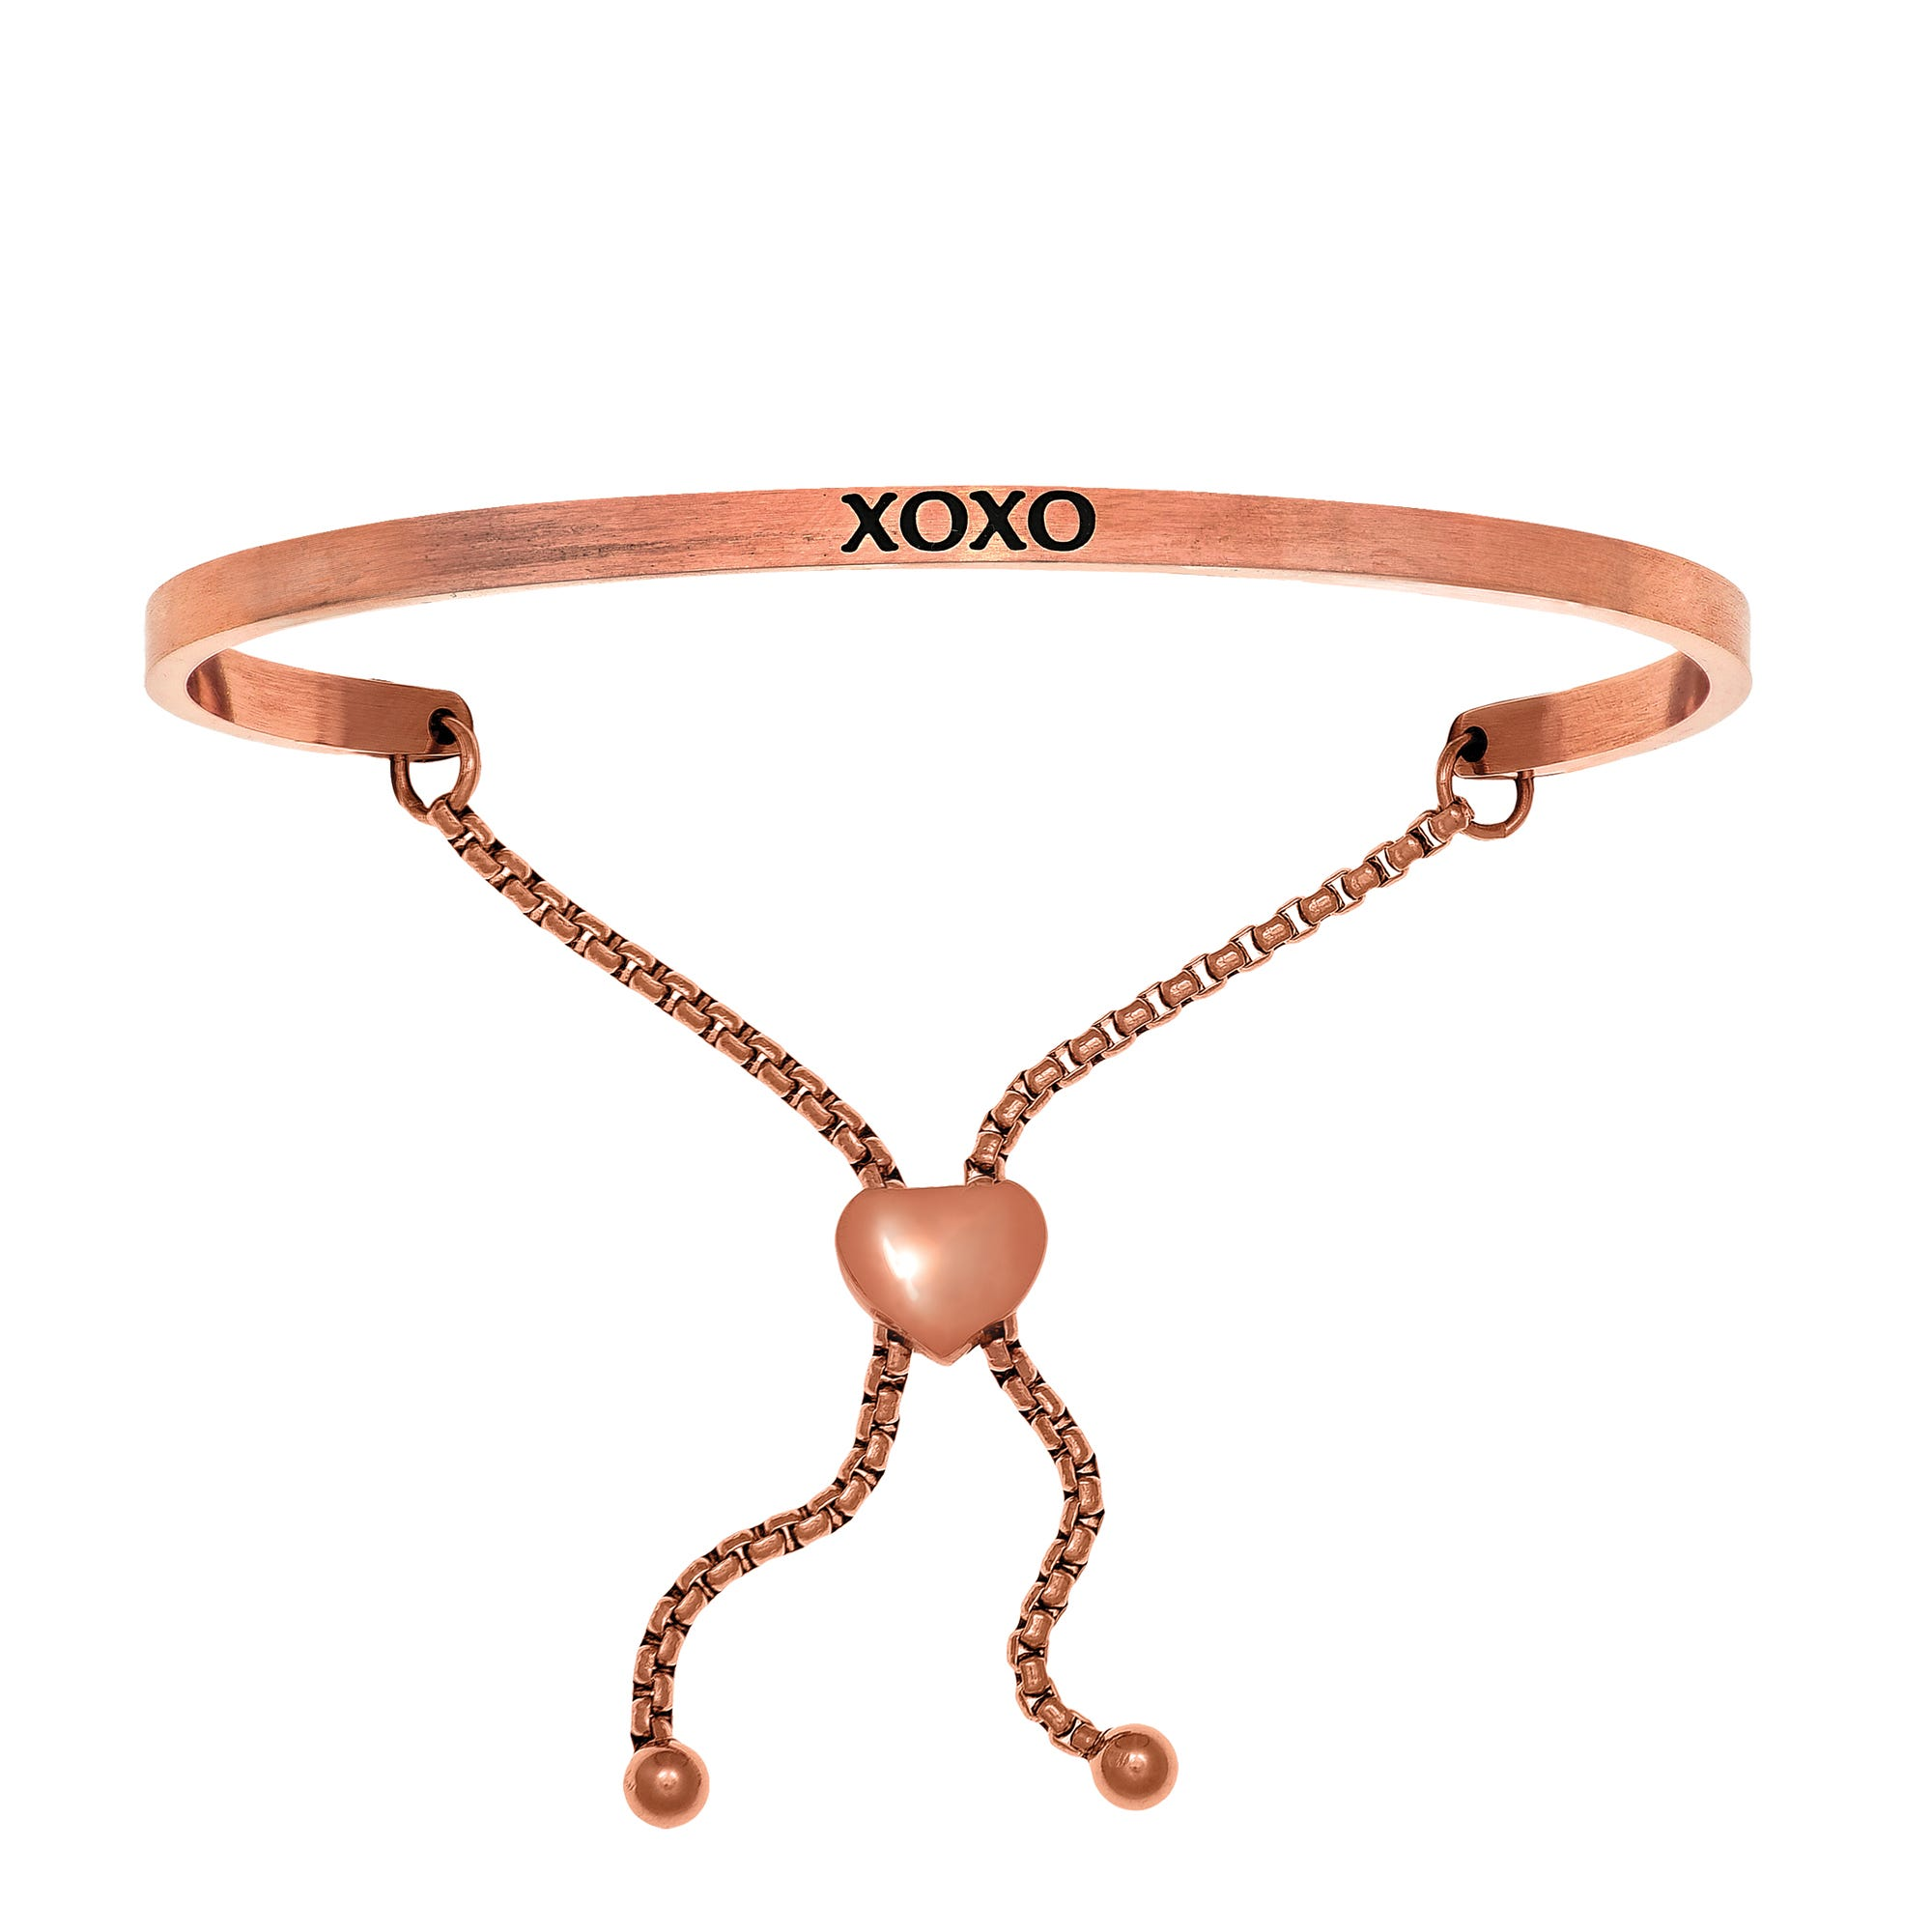 XOXO. Intuitions Bolo Bracelet in Pink Stainless Steel